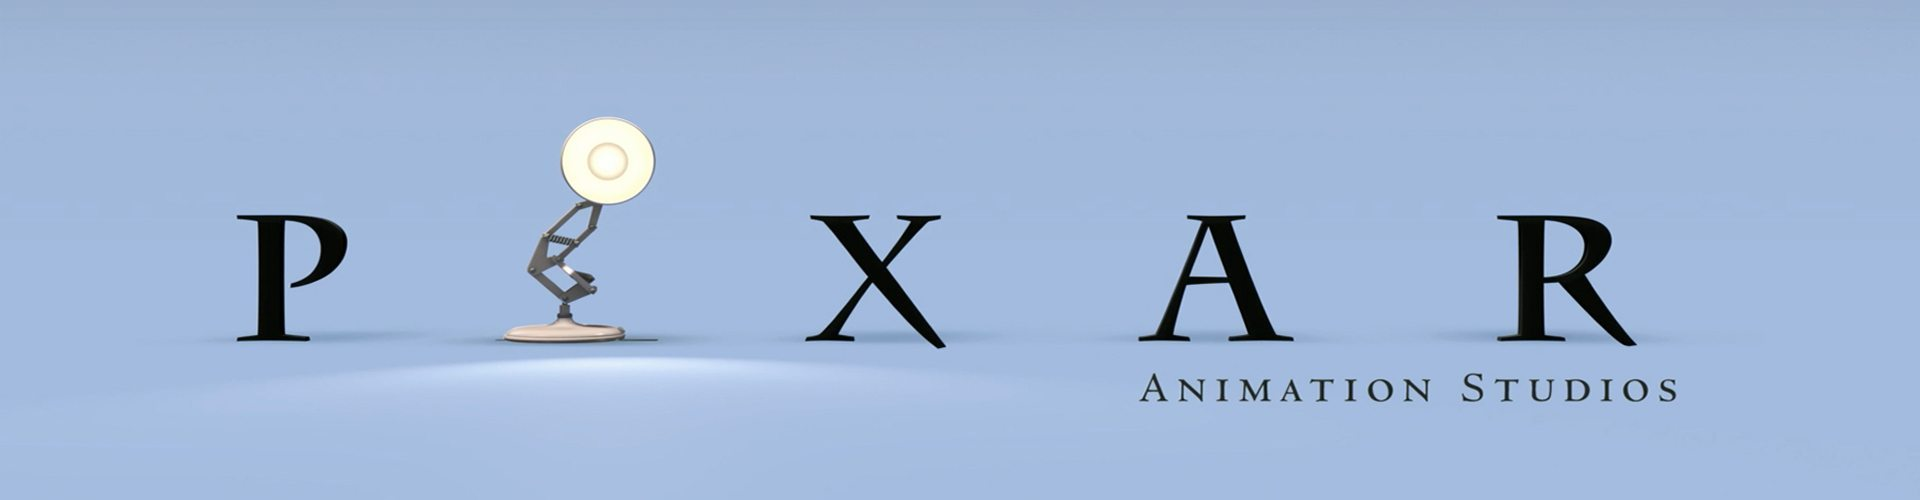 Animation Studios: Pixar Animation Studios